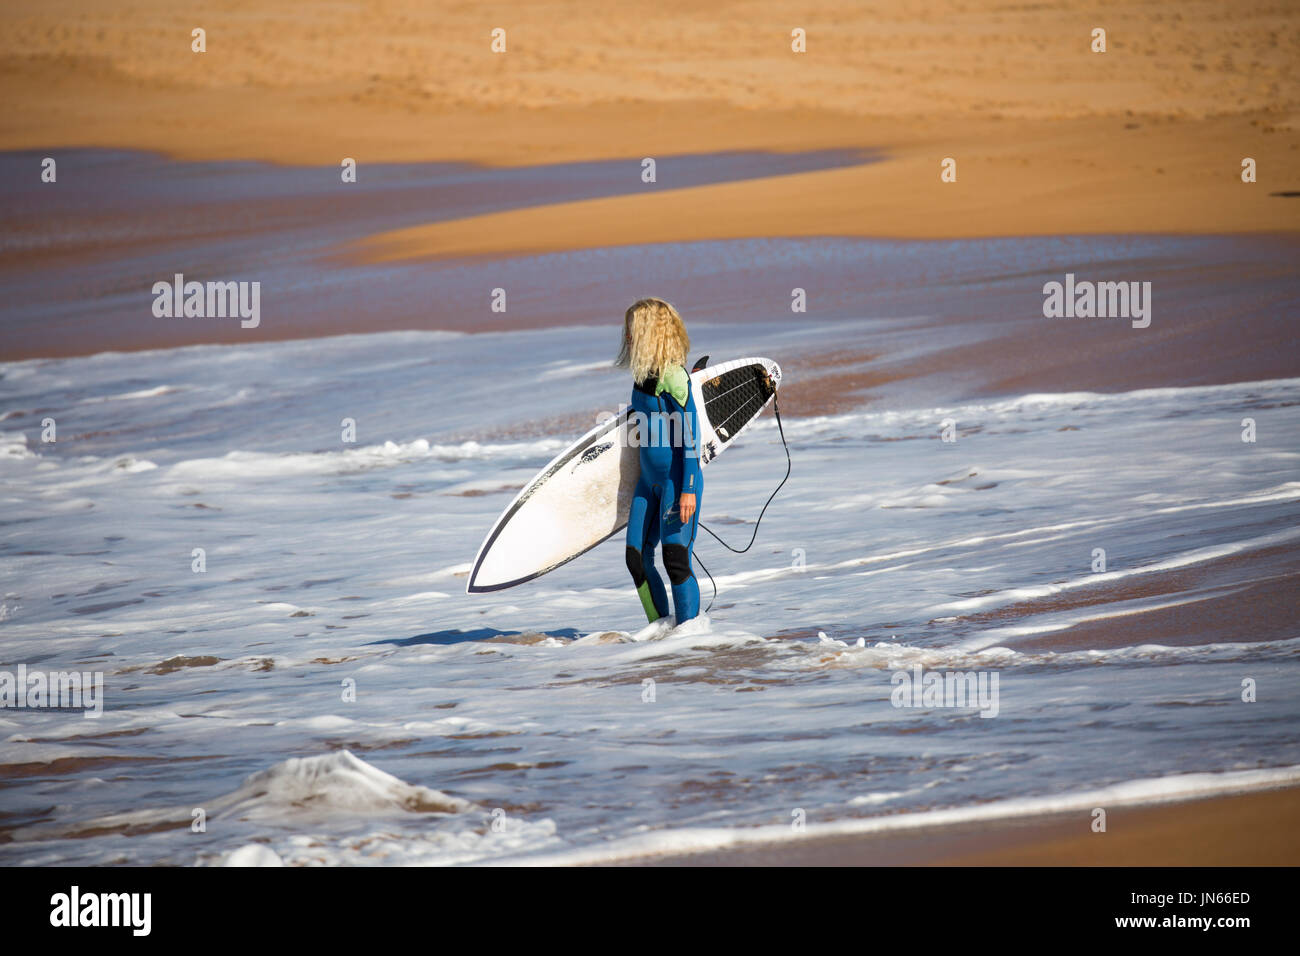 Blonde australian lady in a wetsuit heading to the surf carrying a surfboard,Sydney,Australia - Stock Image